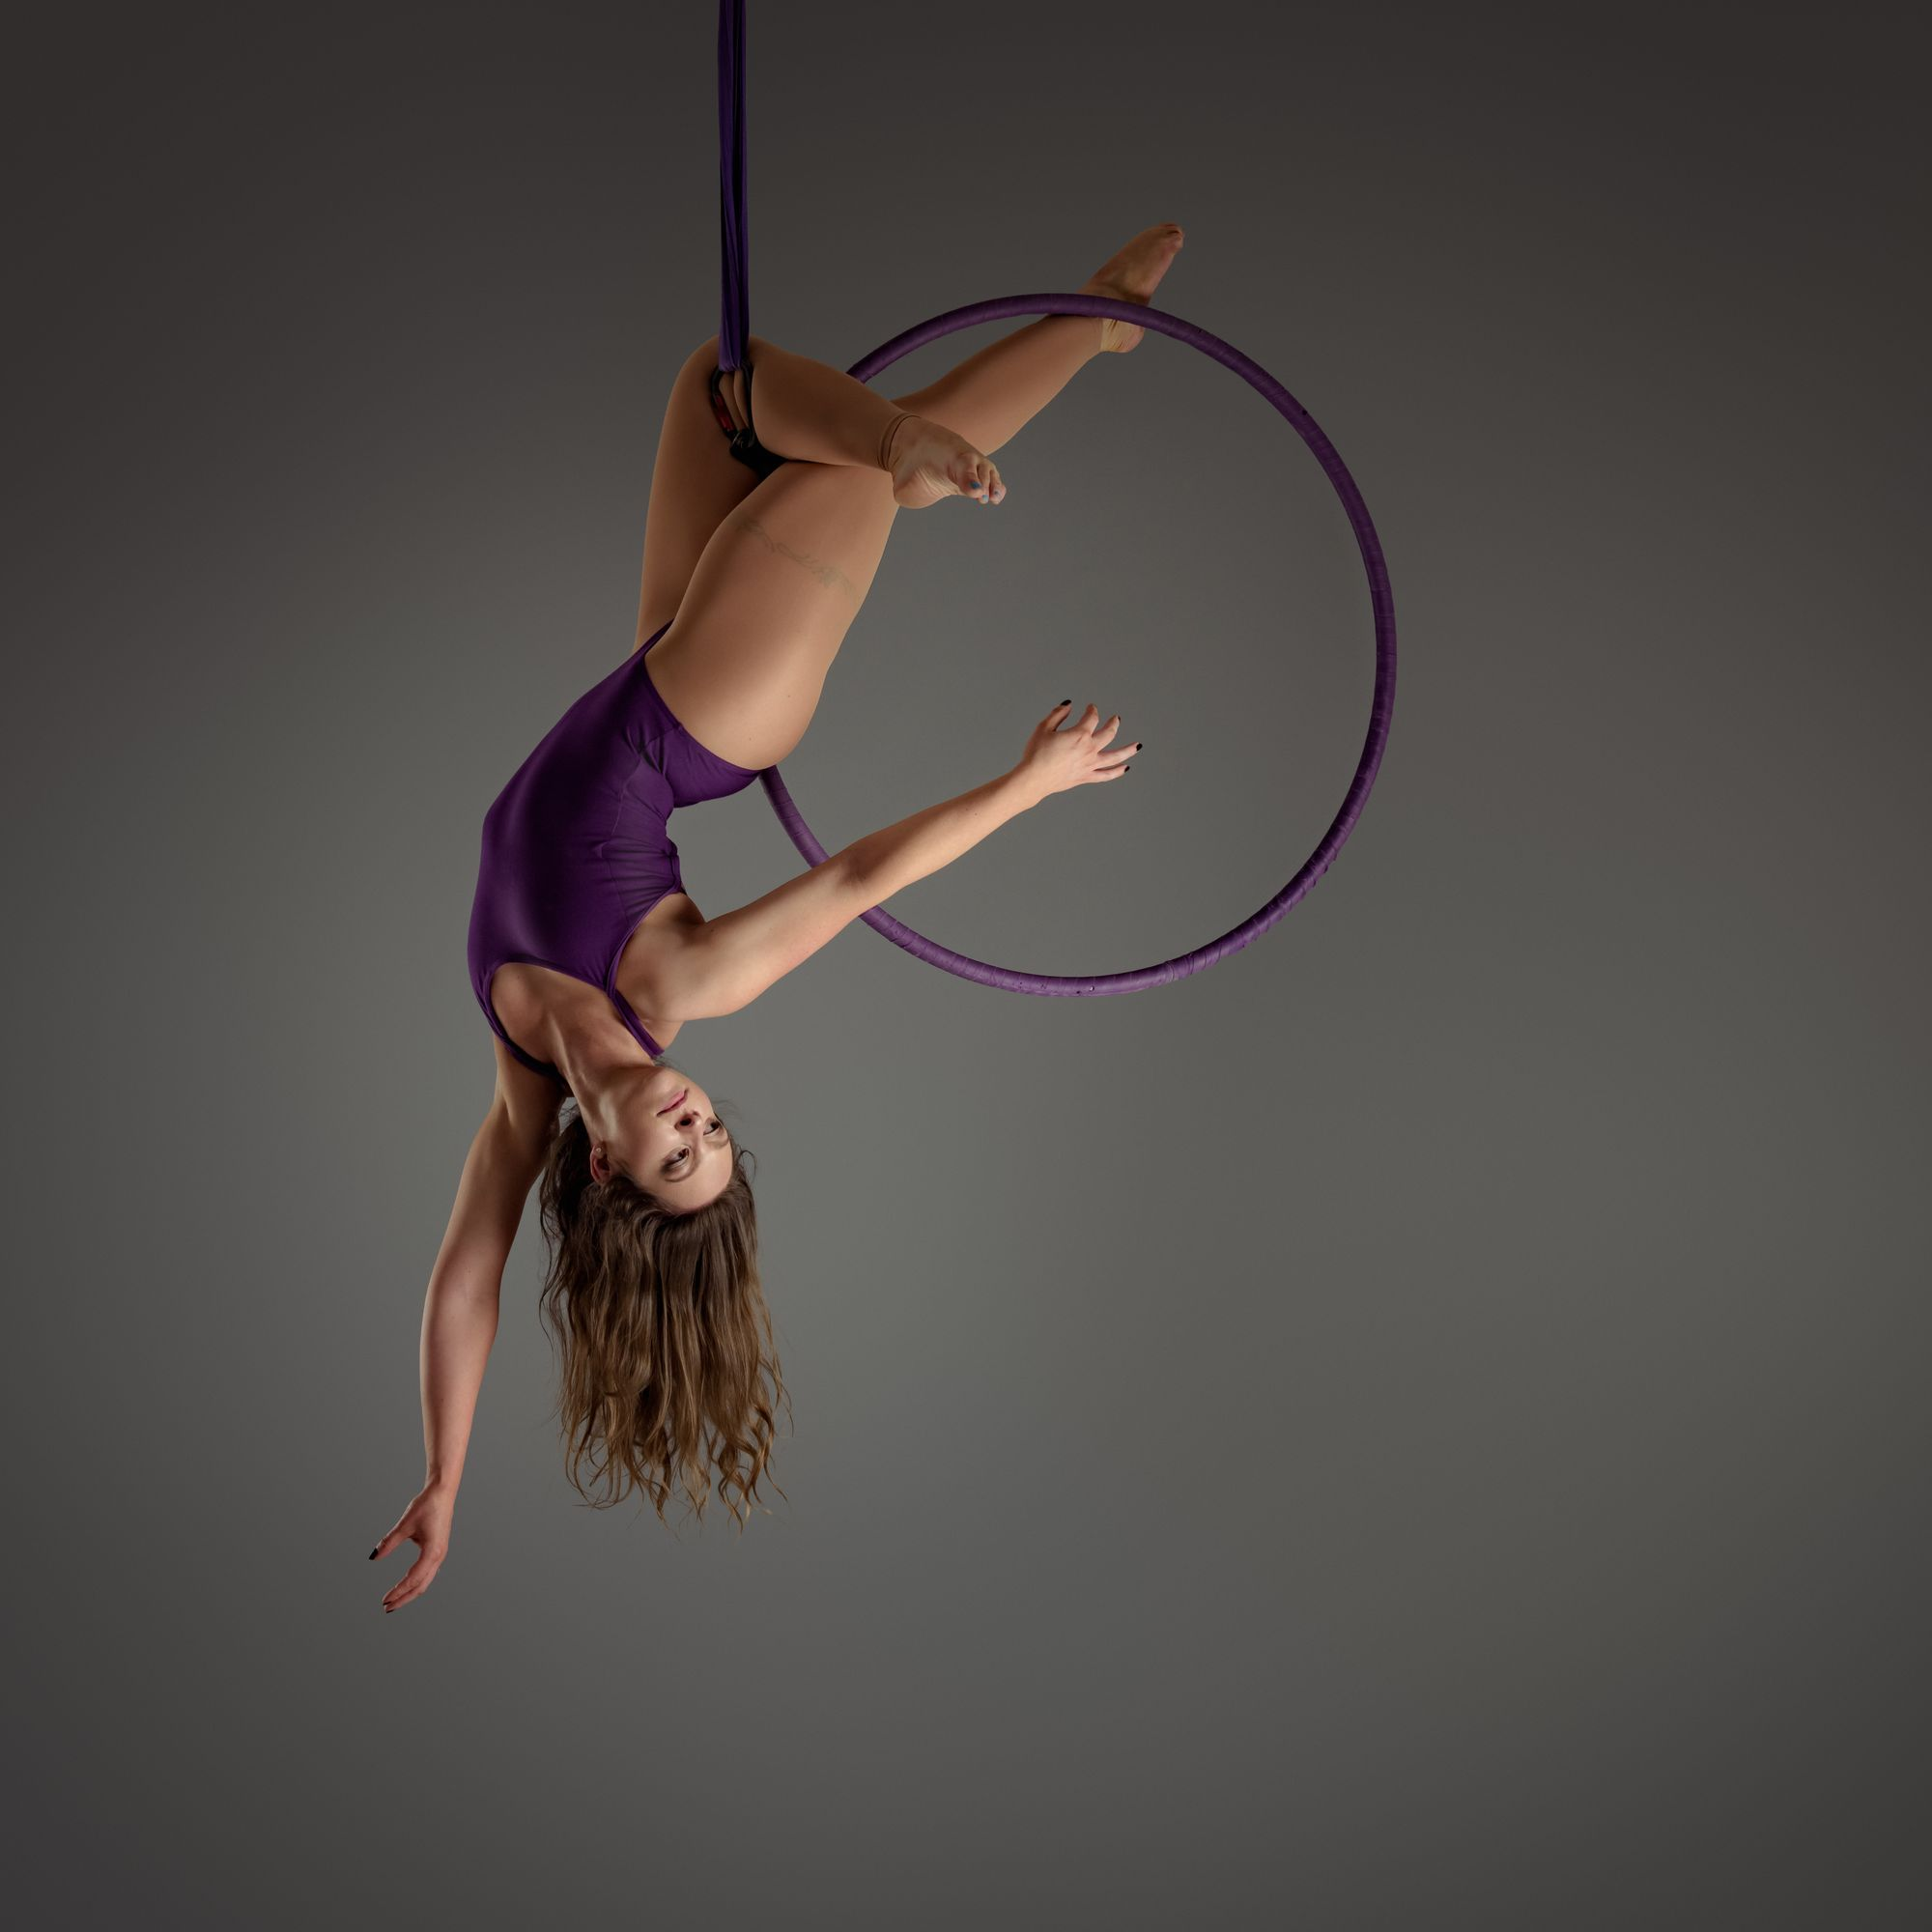 Happy Birthday Unique Aerialists Academy!!